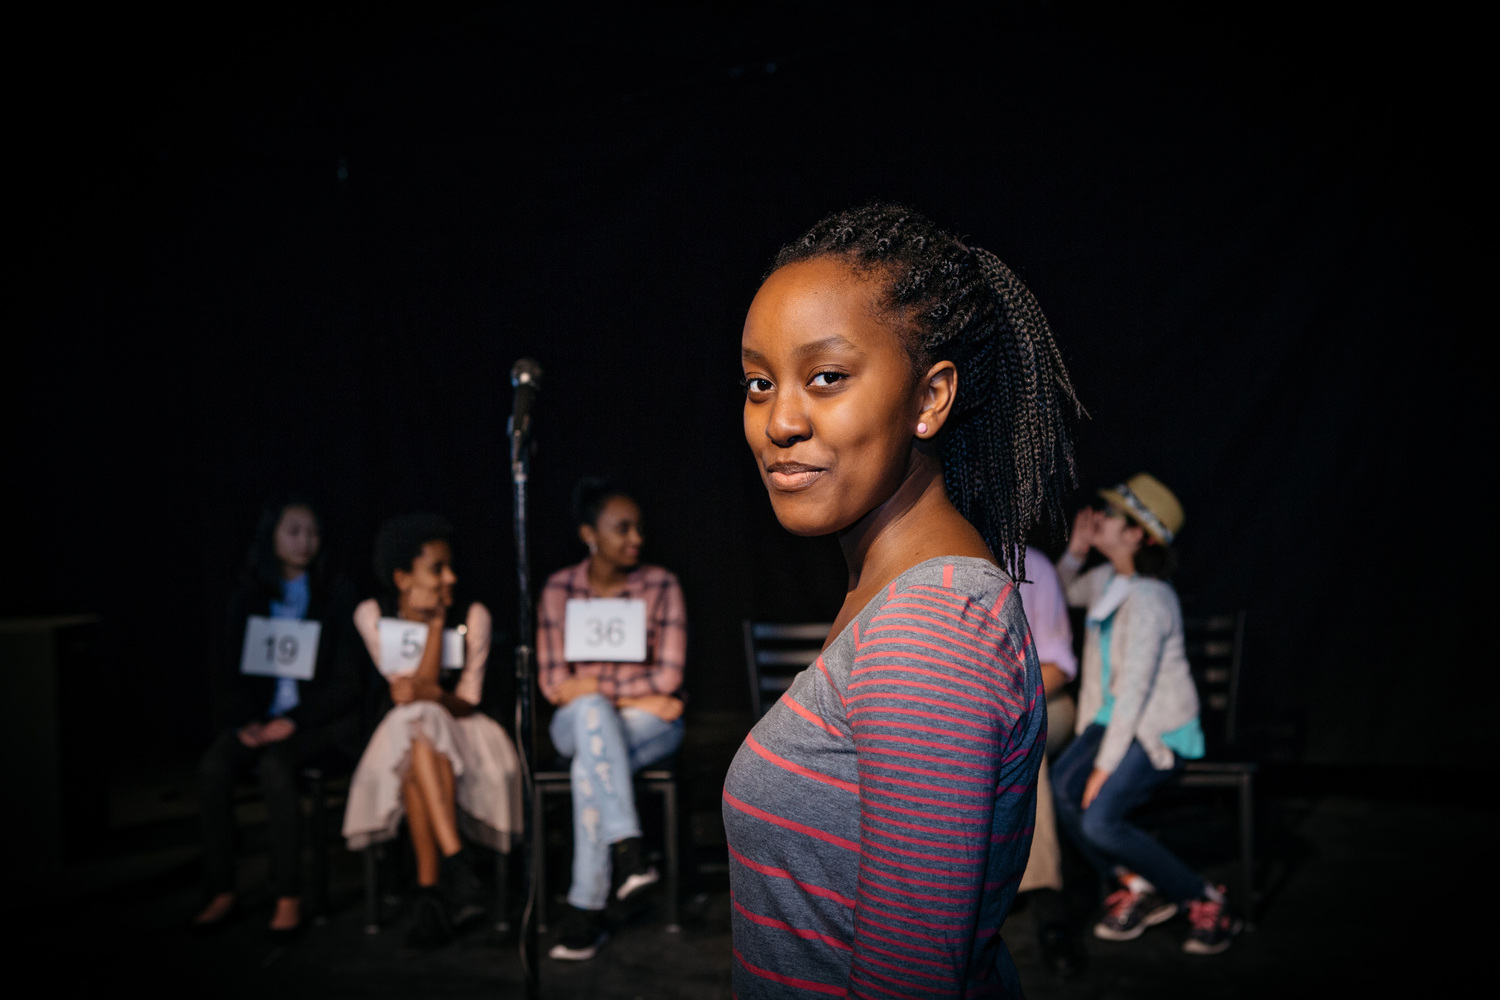 BWW Review: AKEELAH AND THE BEE at Open Stage Of Harrisburg